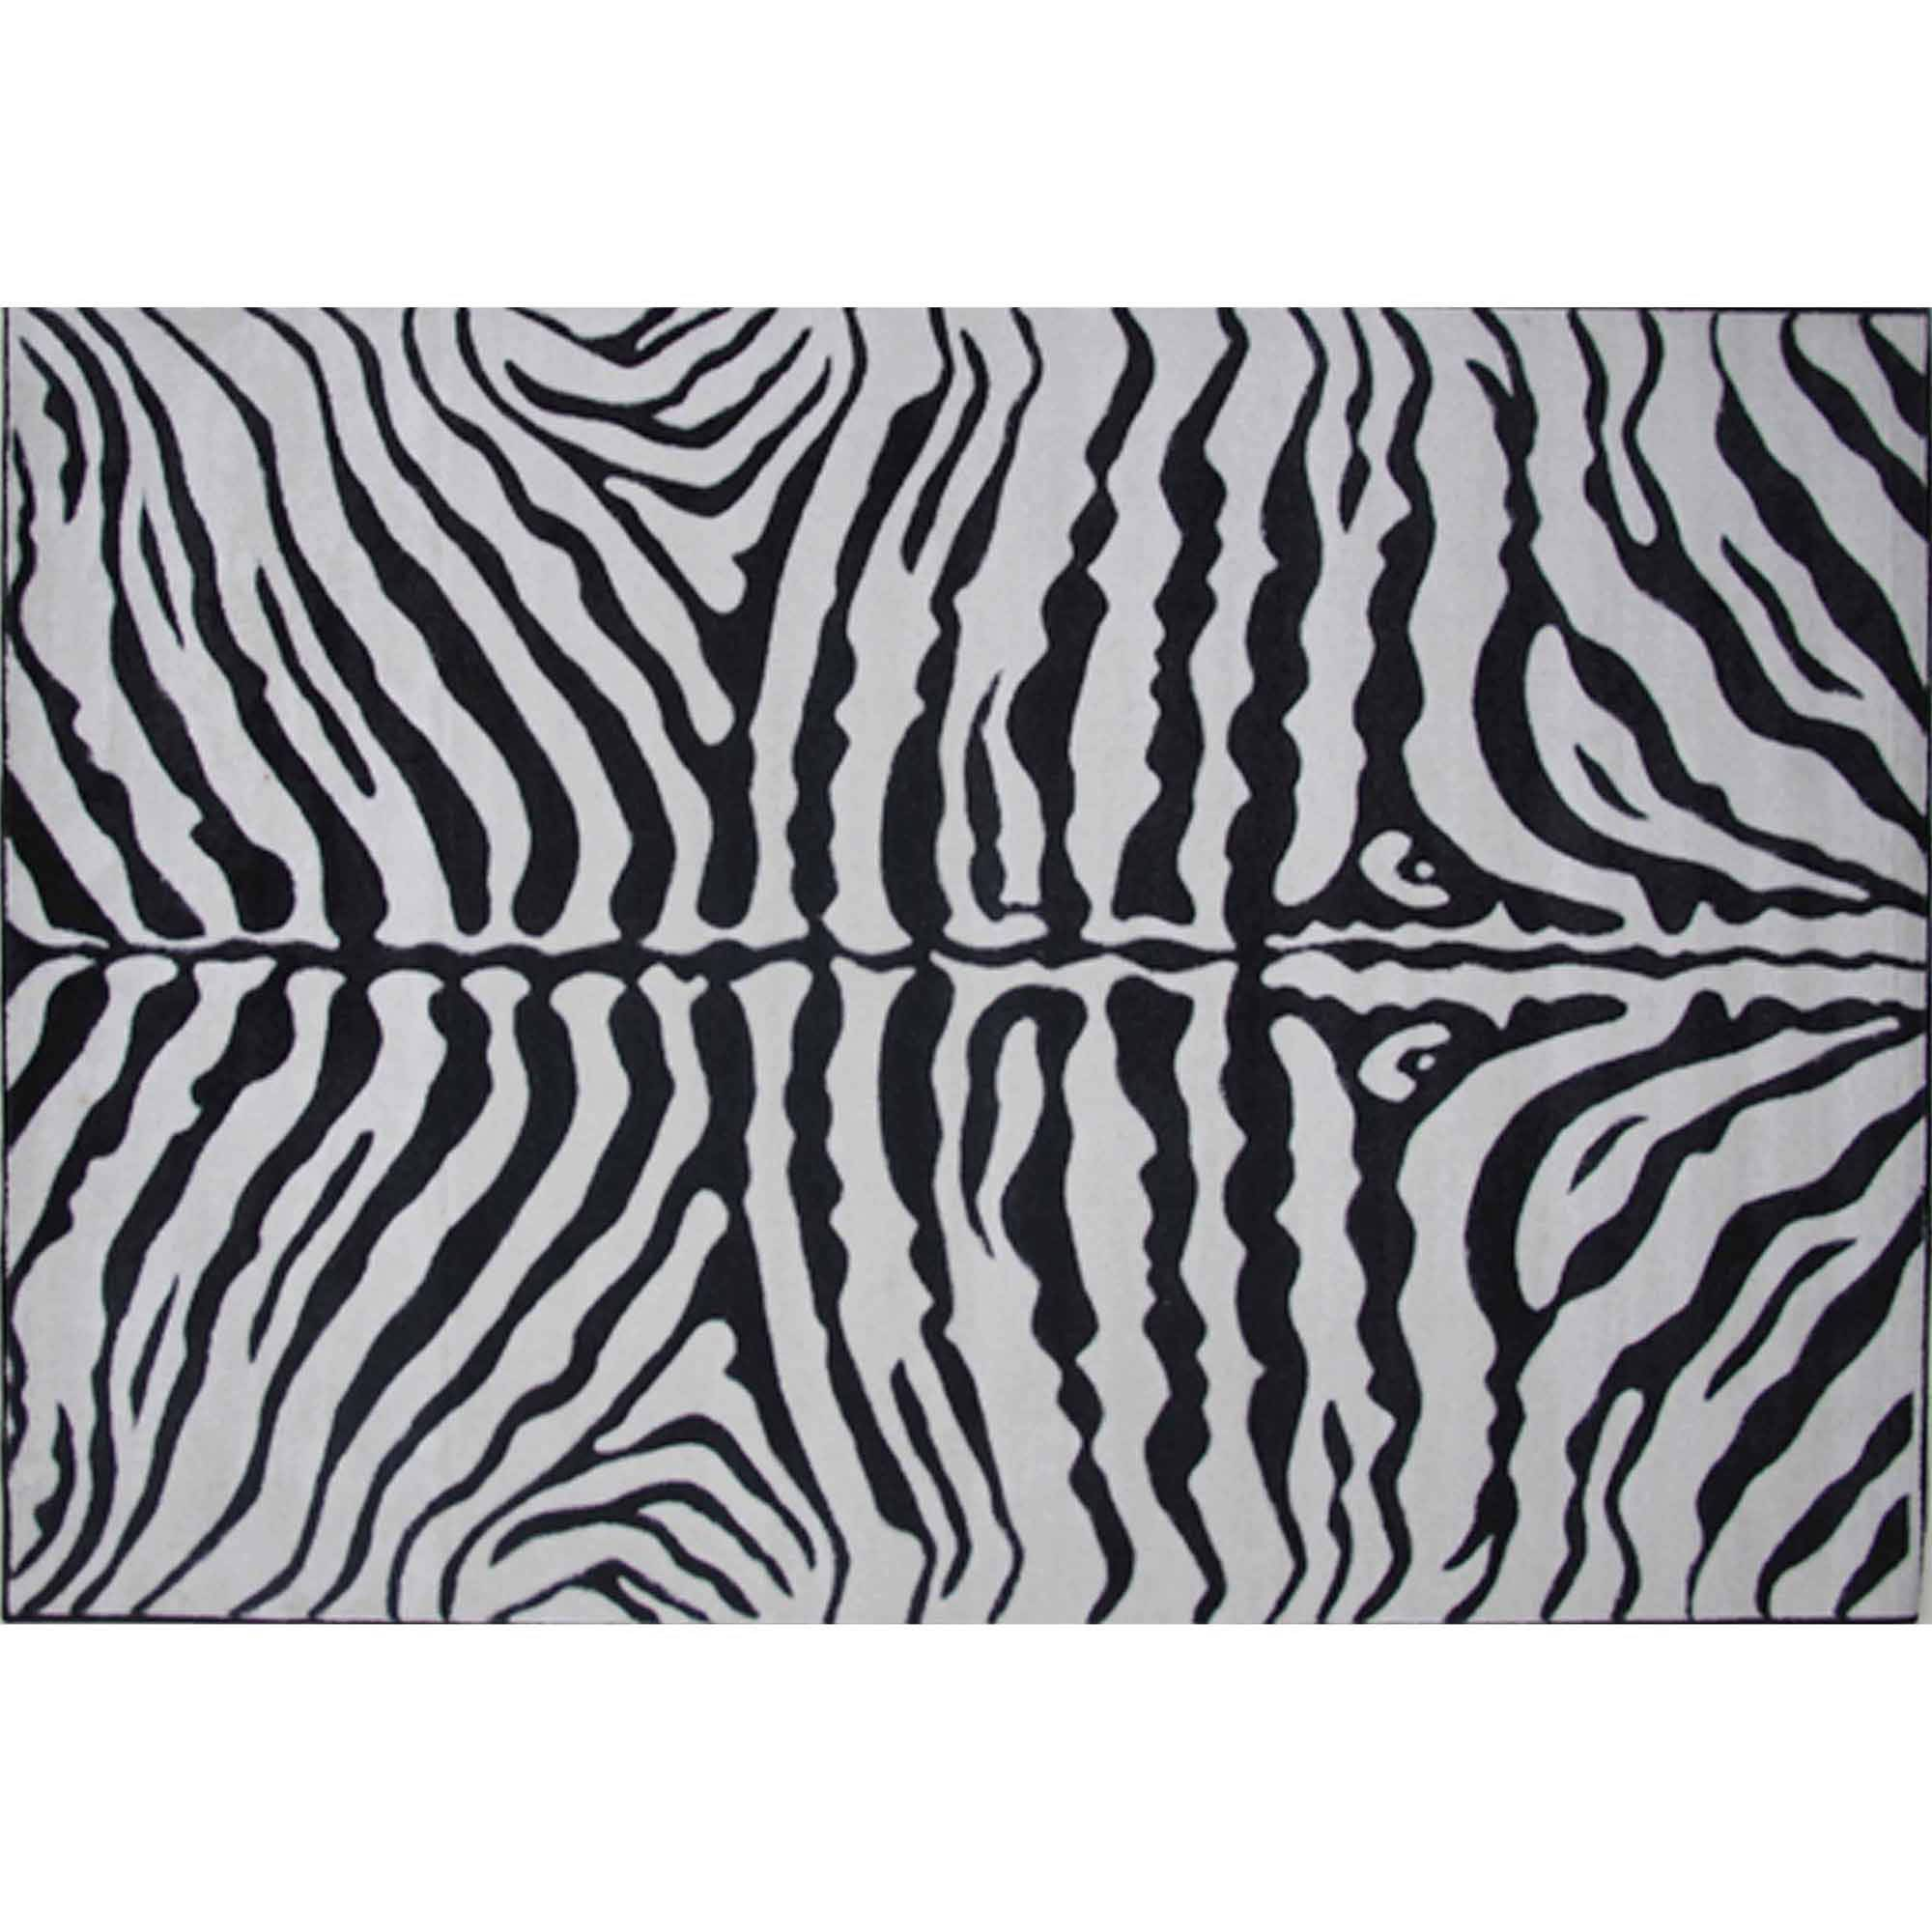 Fun Rugs Zebra Skin Kids Rugs